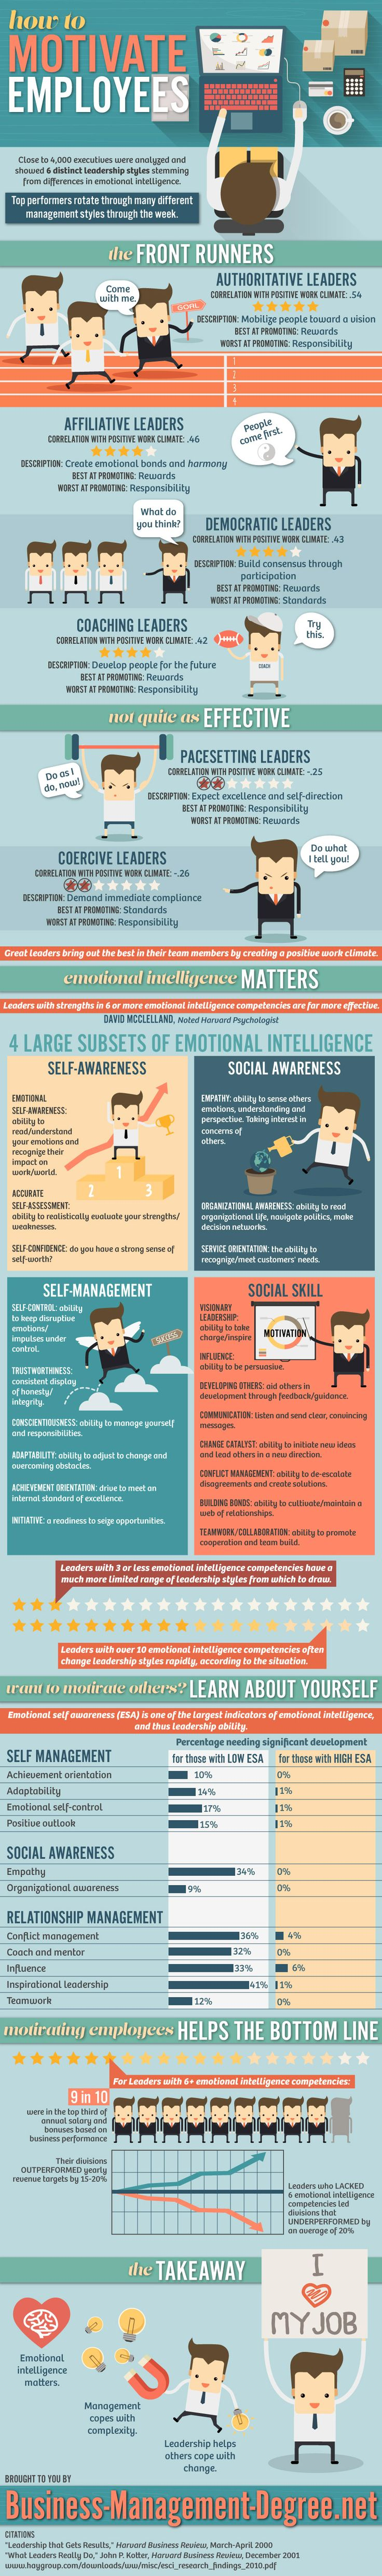 How To Motivate Employees - #infographic